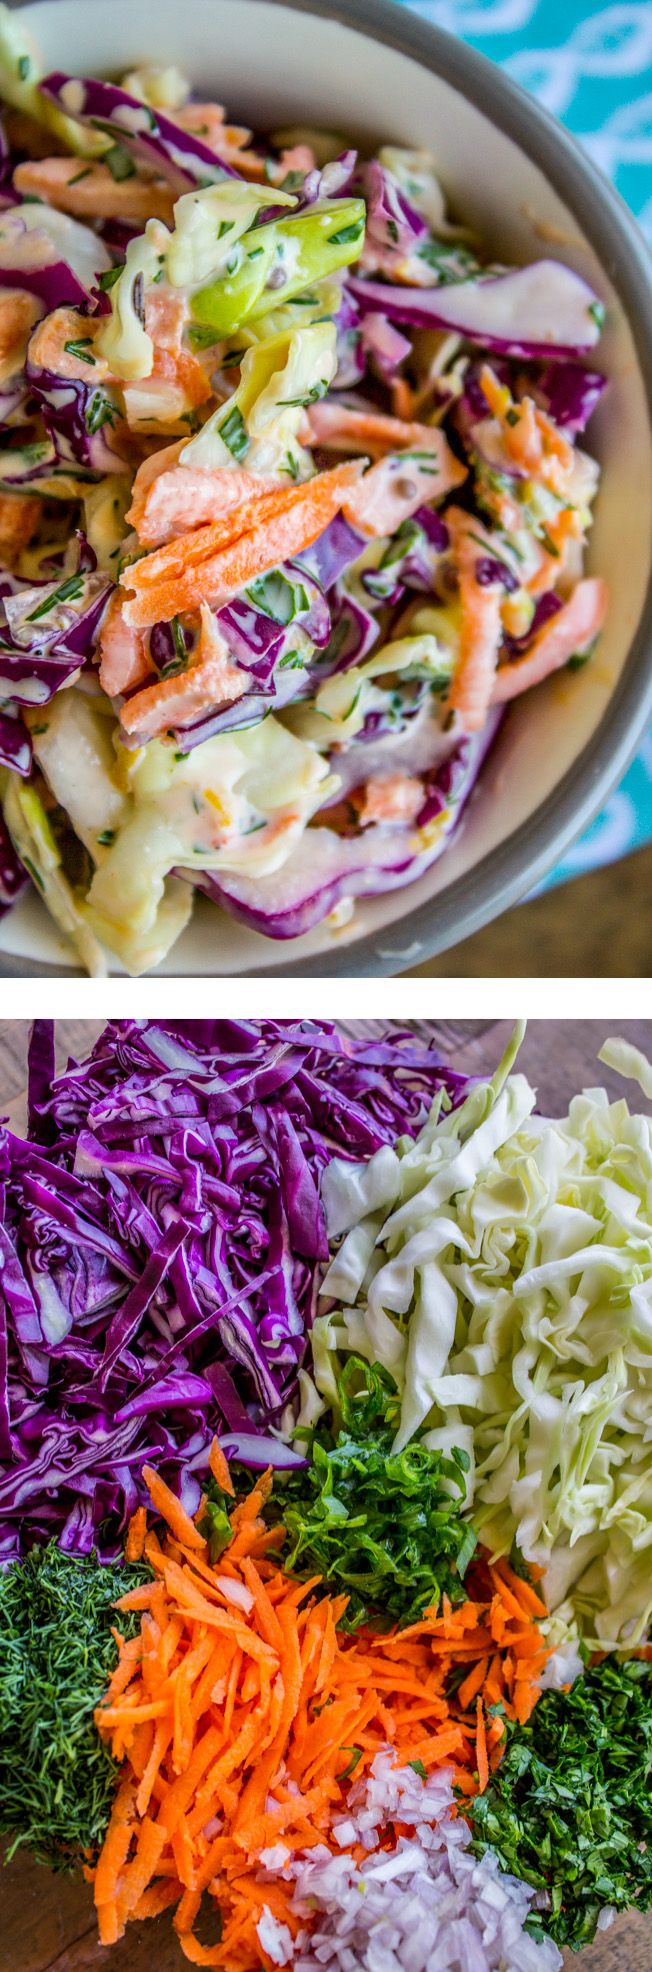 My Favorite Coleslaw (Made with Lemon and Fresh Herbs) from The Food Charlatan. This is not your average coleslaw! It is brightened up with some lemon juice and tons of fresh herbs (like dill, parsley, thyme, and chives). It's not overly sweet like so many recipes are. It's my absolute favorite for BBQs and potlucks! It would be good paired with grilled or fried chicken, on a pulled pork sandwich, on a hamburger...